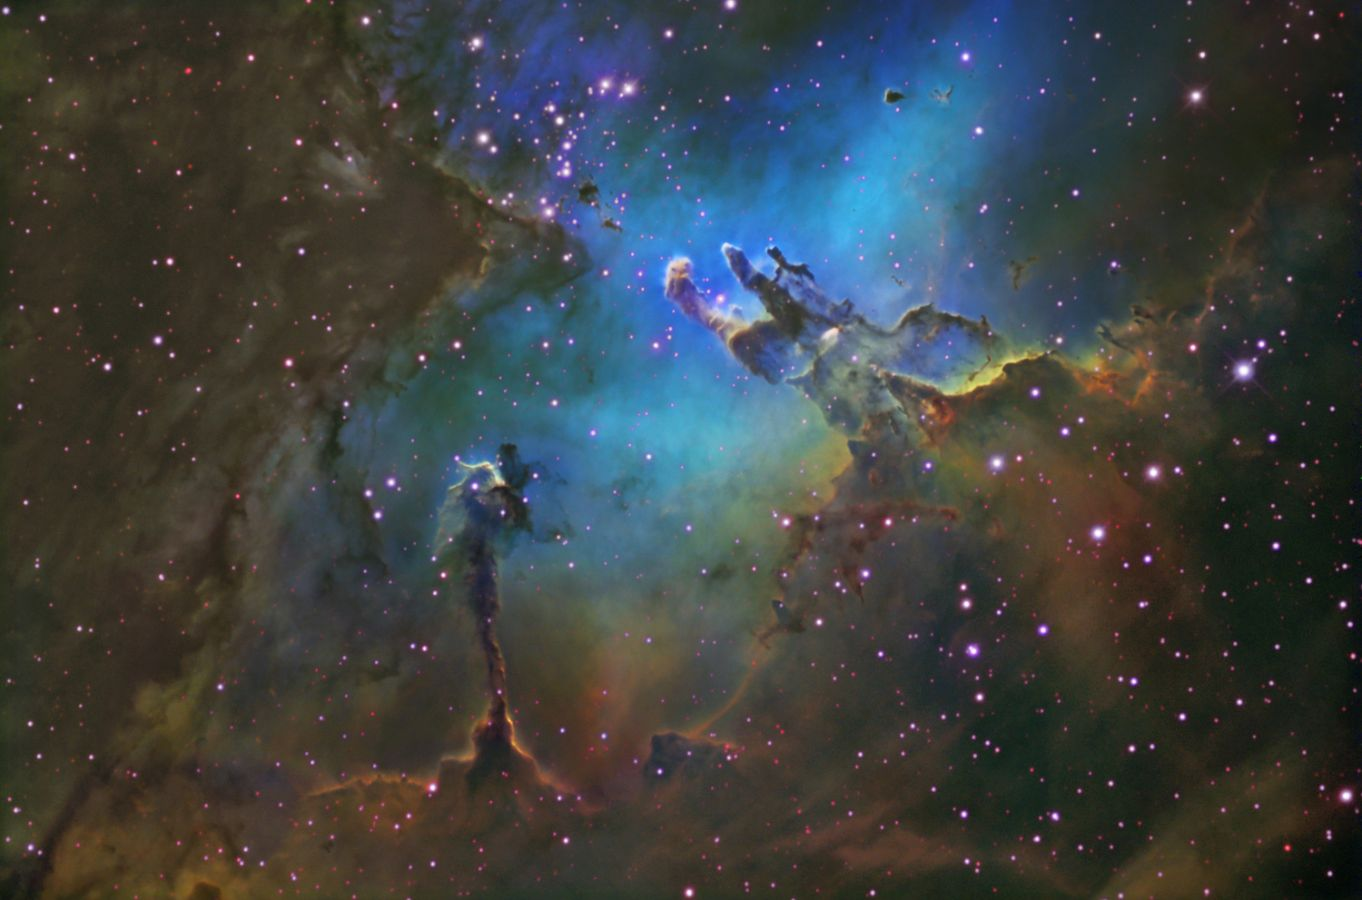 Eagle Nebula Hd Wallpaper Carnival Of Space 412 Best Space Stories Of The Week